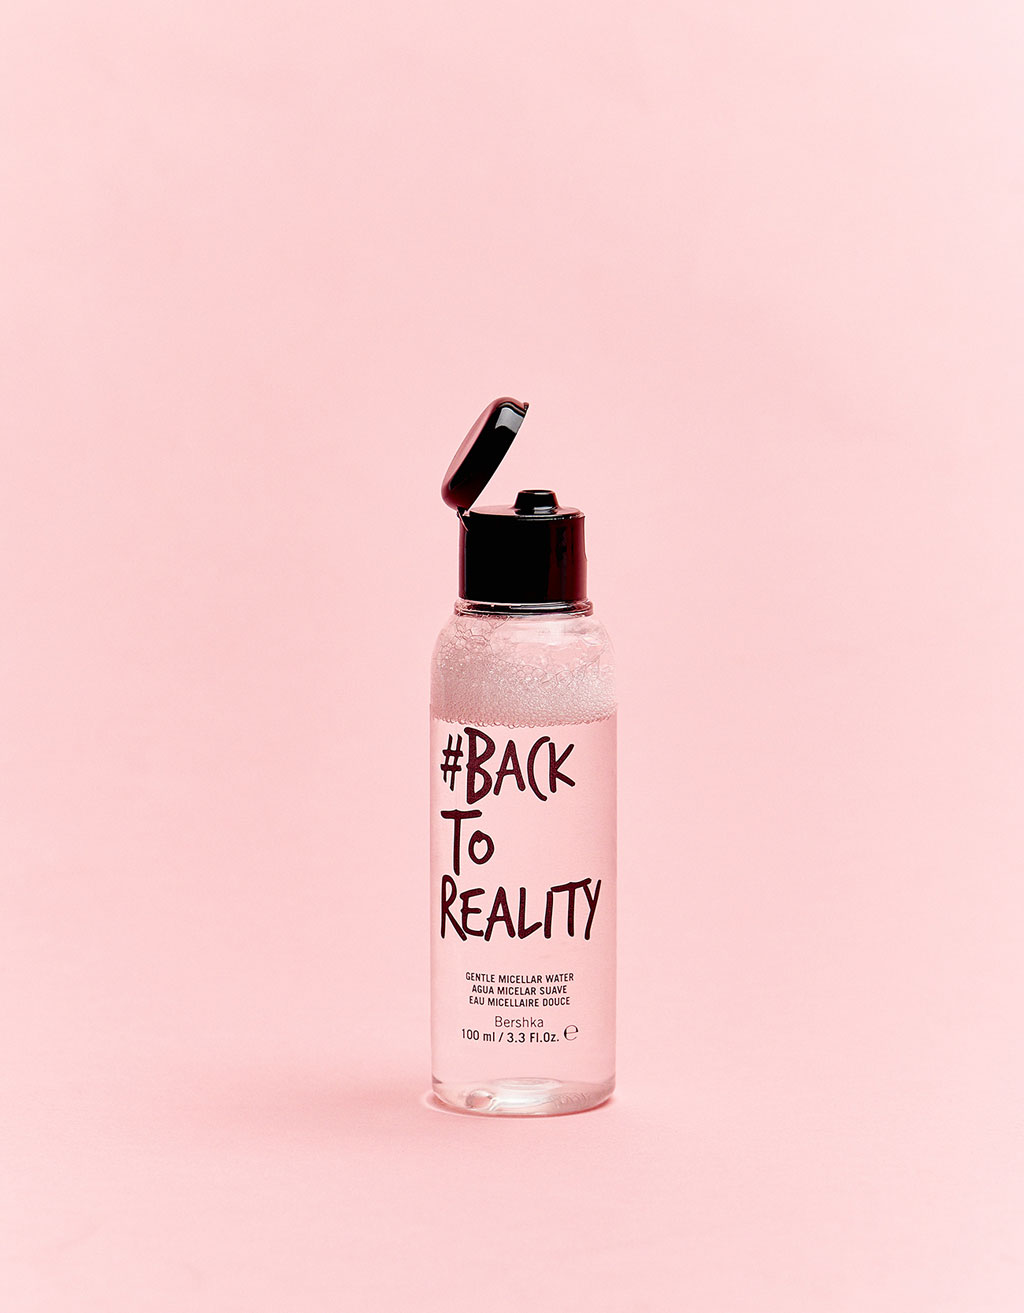 #backtoreality Gentle micellar water